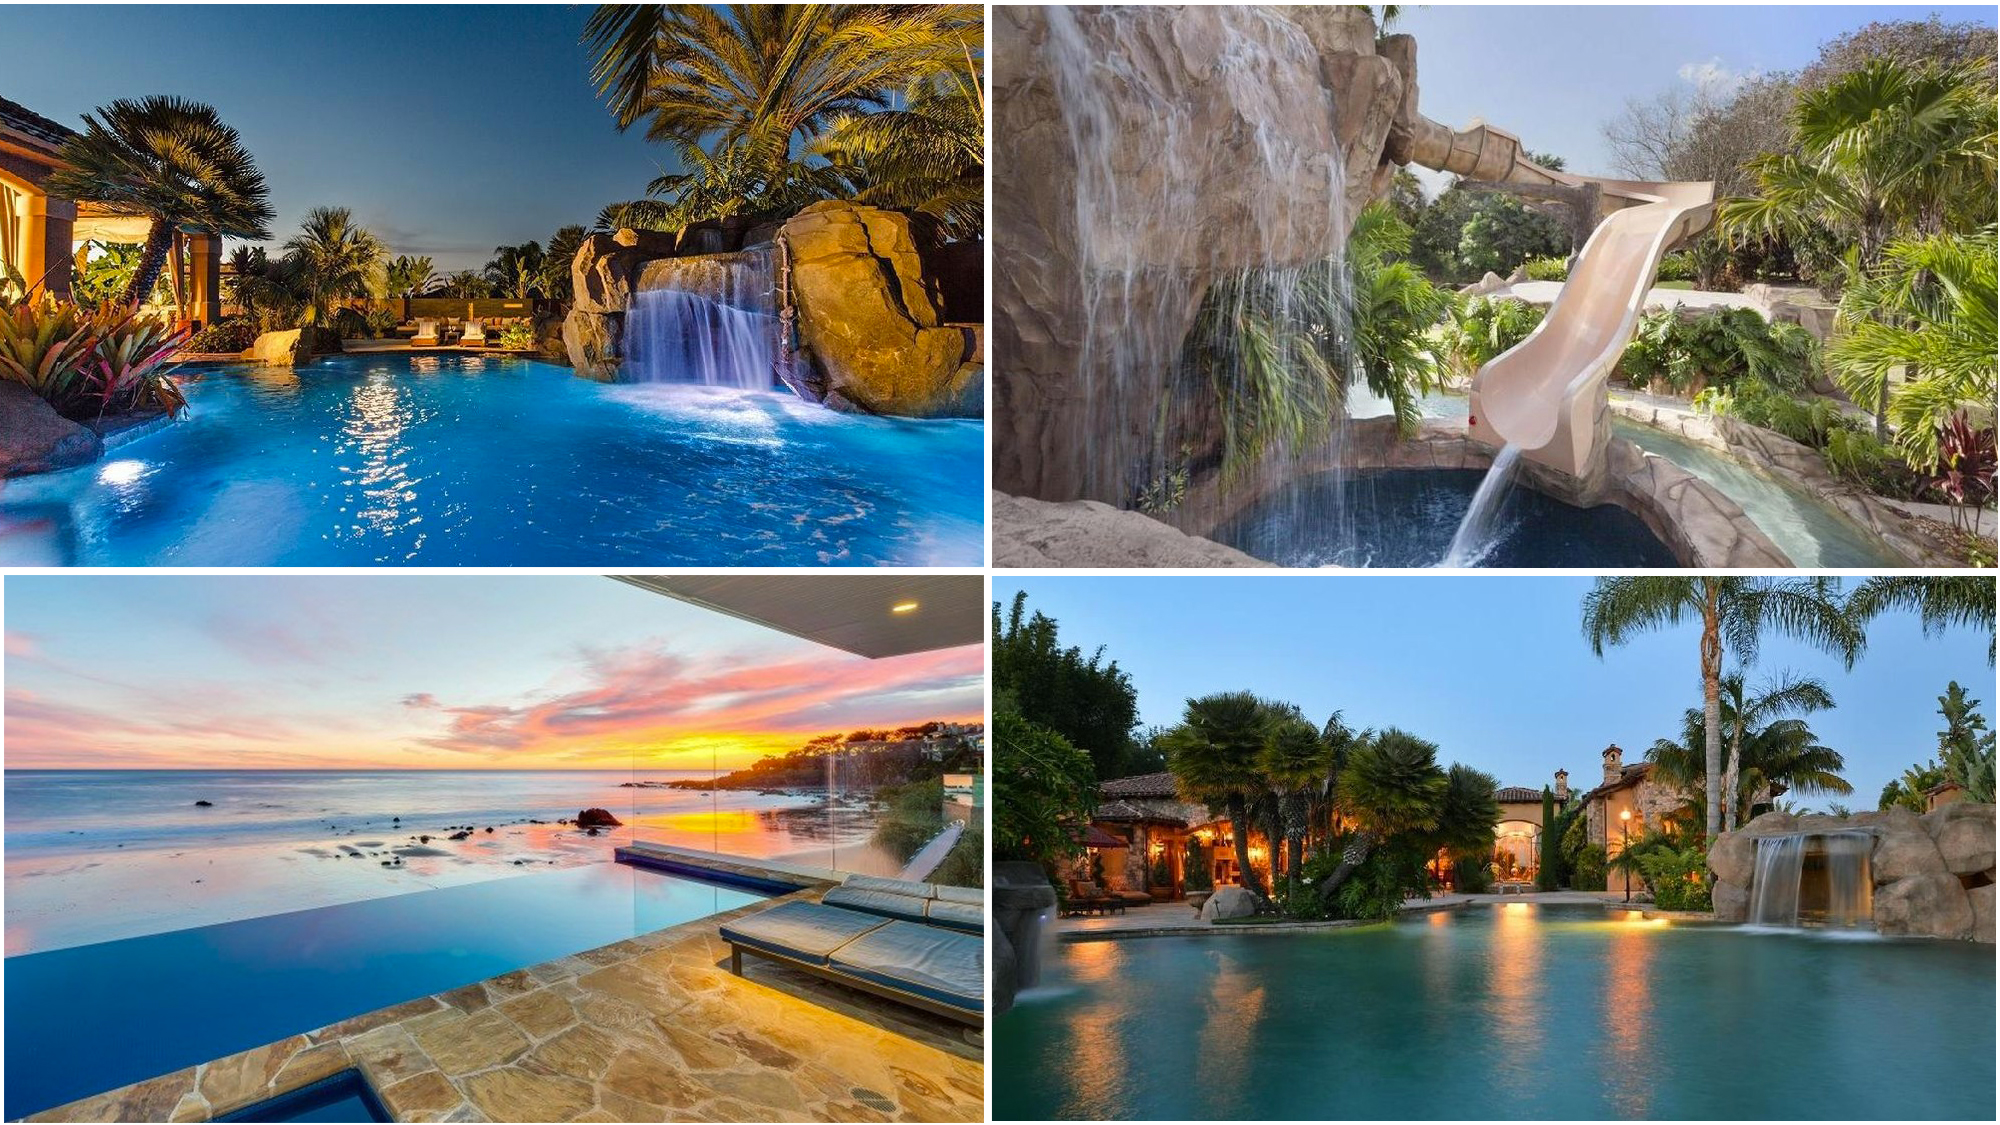 Hot Season Saviors: You Won't Believe These 14 Amazing Pools